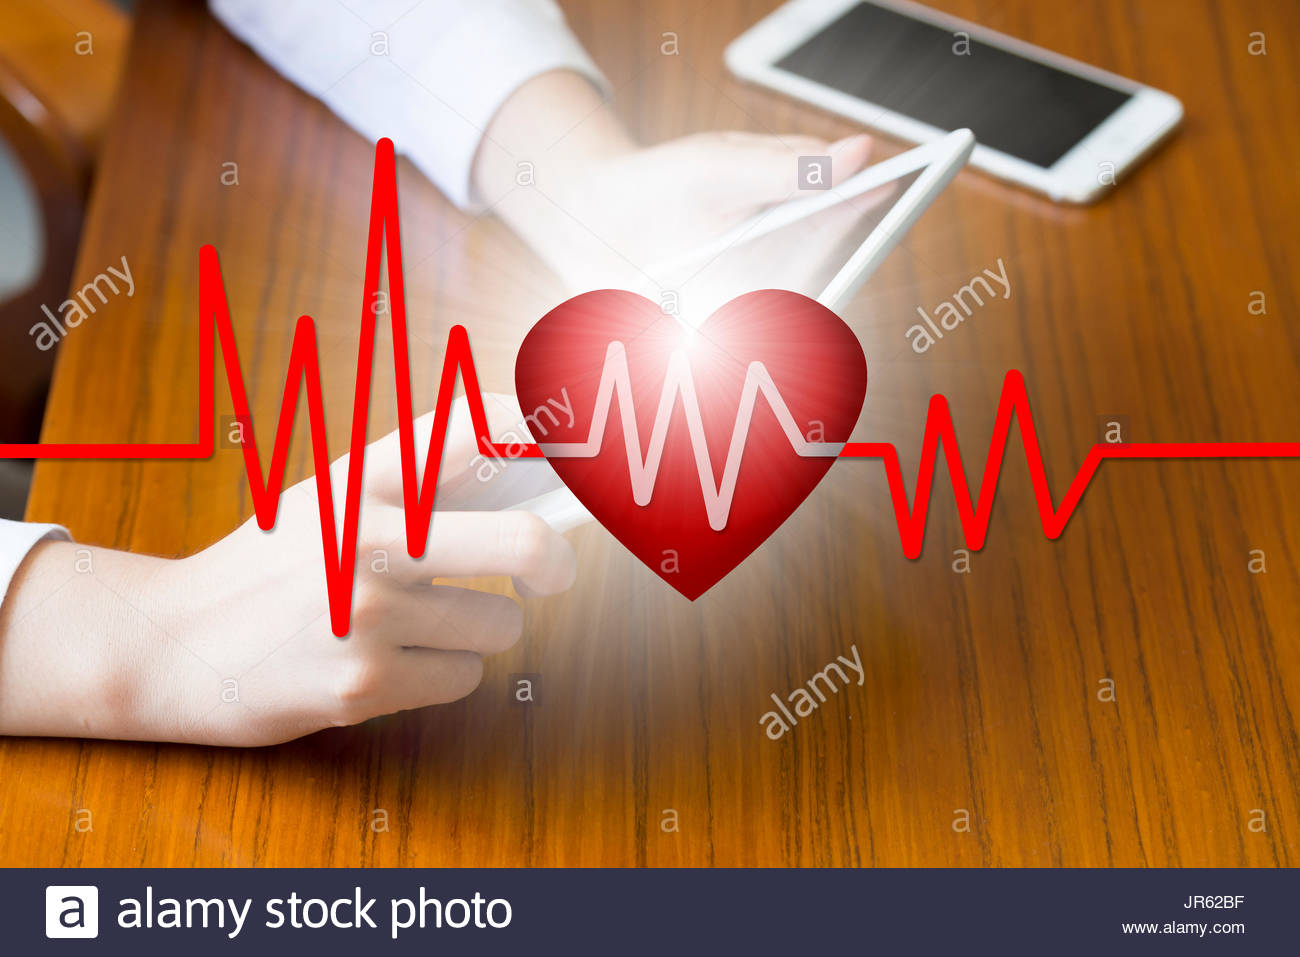 Doctors press tablet, iPad, E-Health concept, health, medicine and heArt and artwork disease concept, health care business philosophy - Stock Image